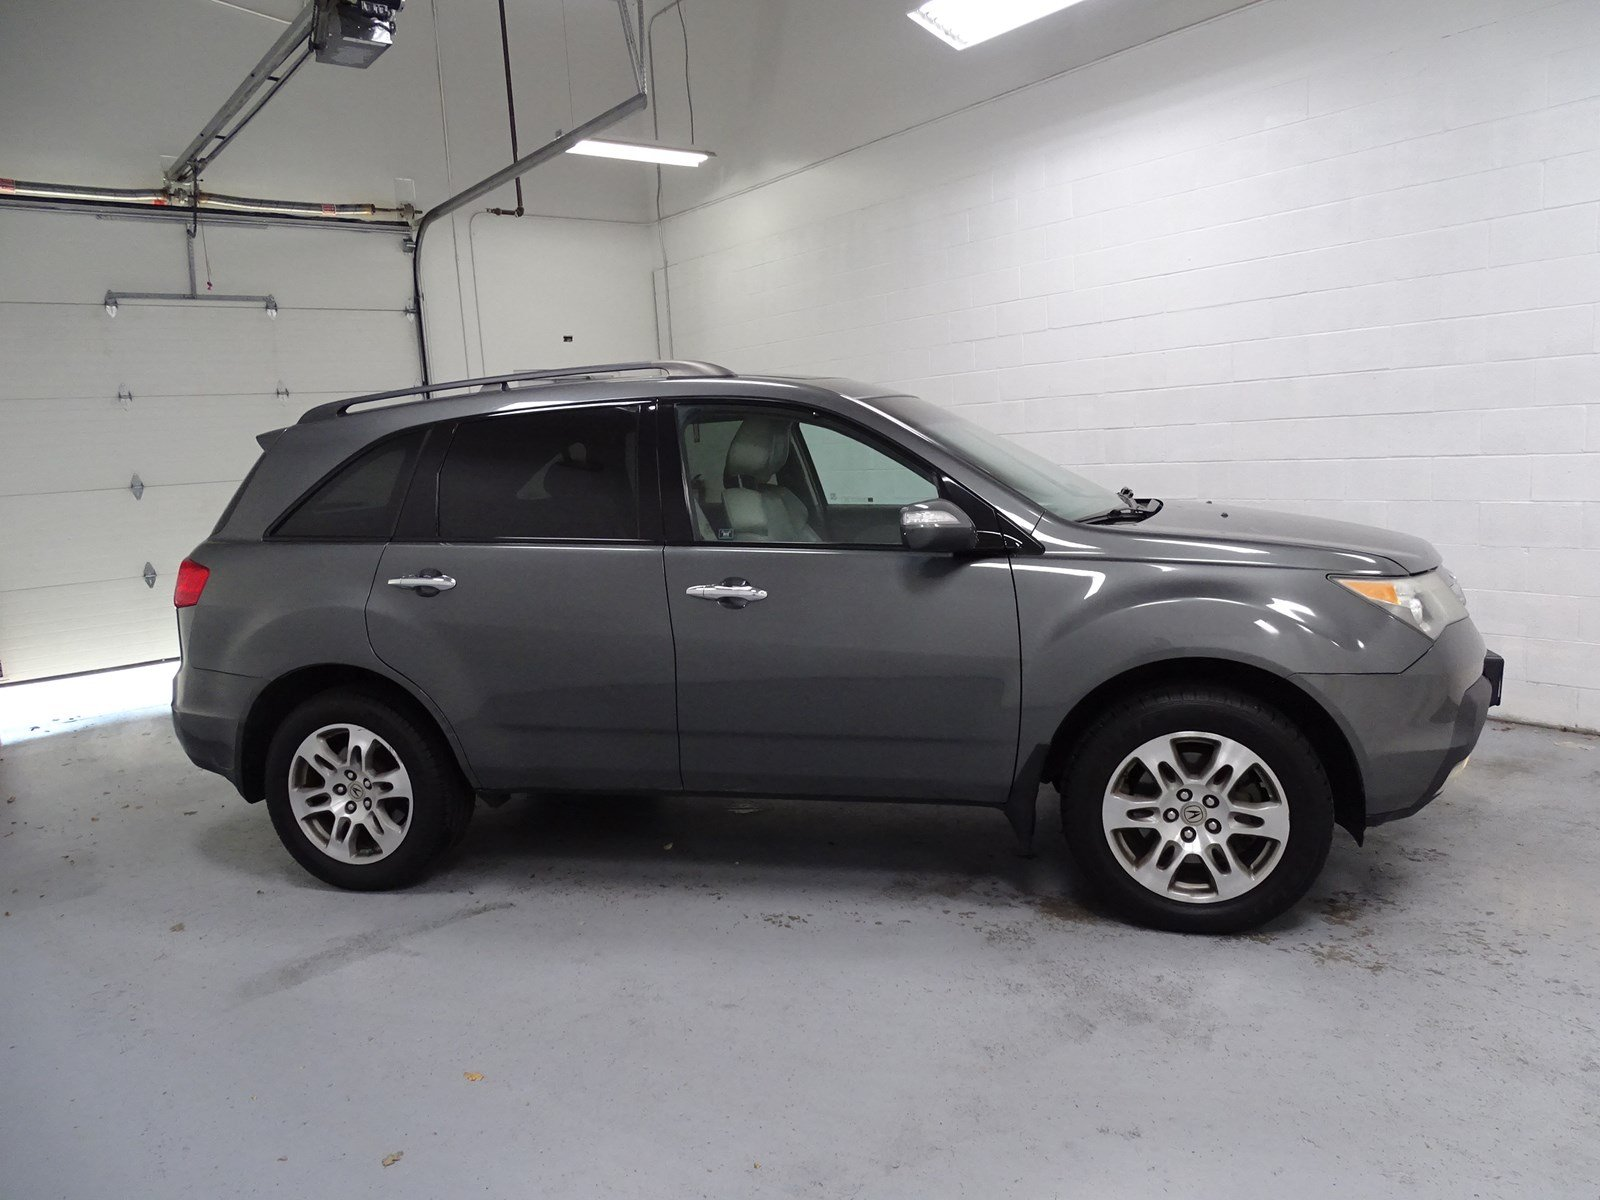 Pre Owned 2008 Acura MDX 3 7L Sport Utility in WEST VALLEY CITY